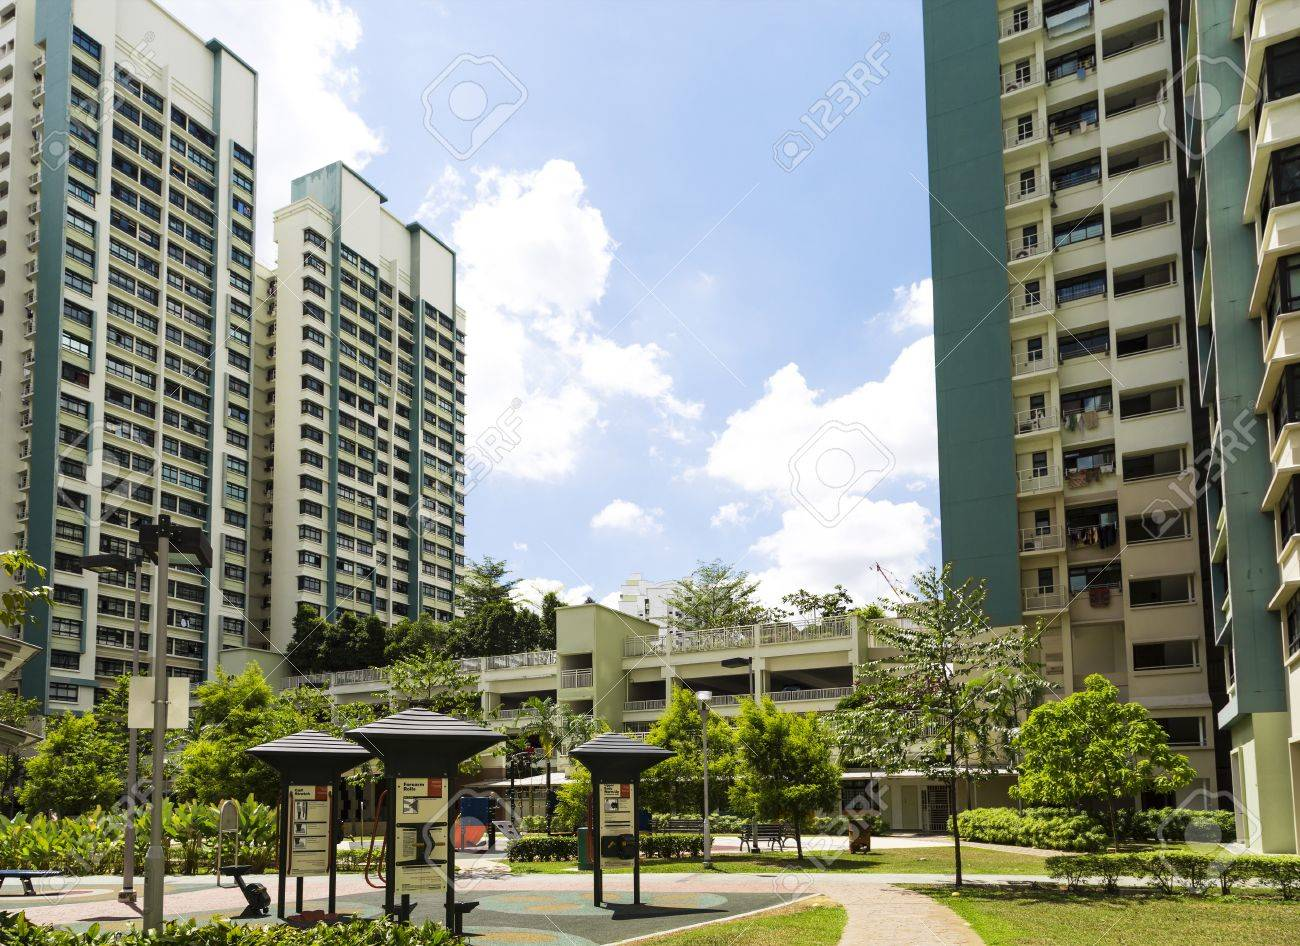 A new apartment neighborhood with carpark and playground  Stock Photo - 20879002